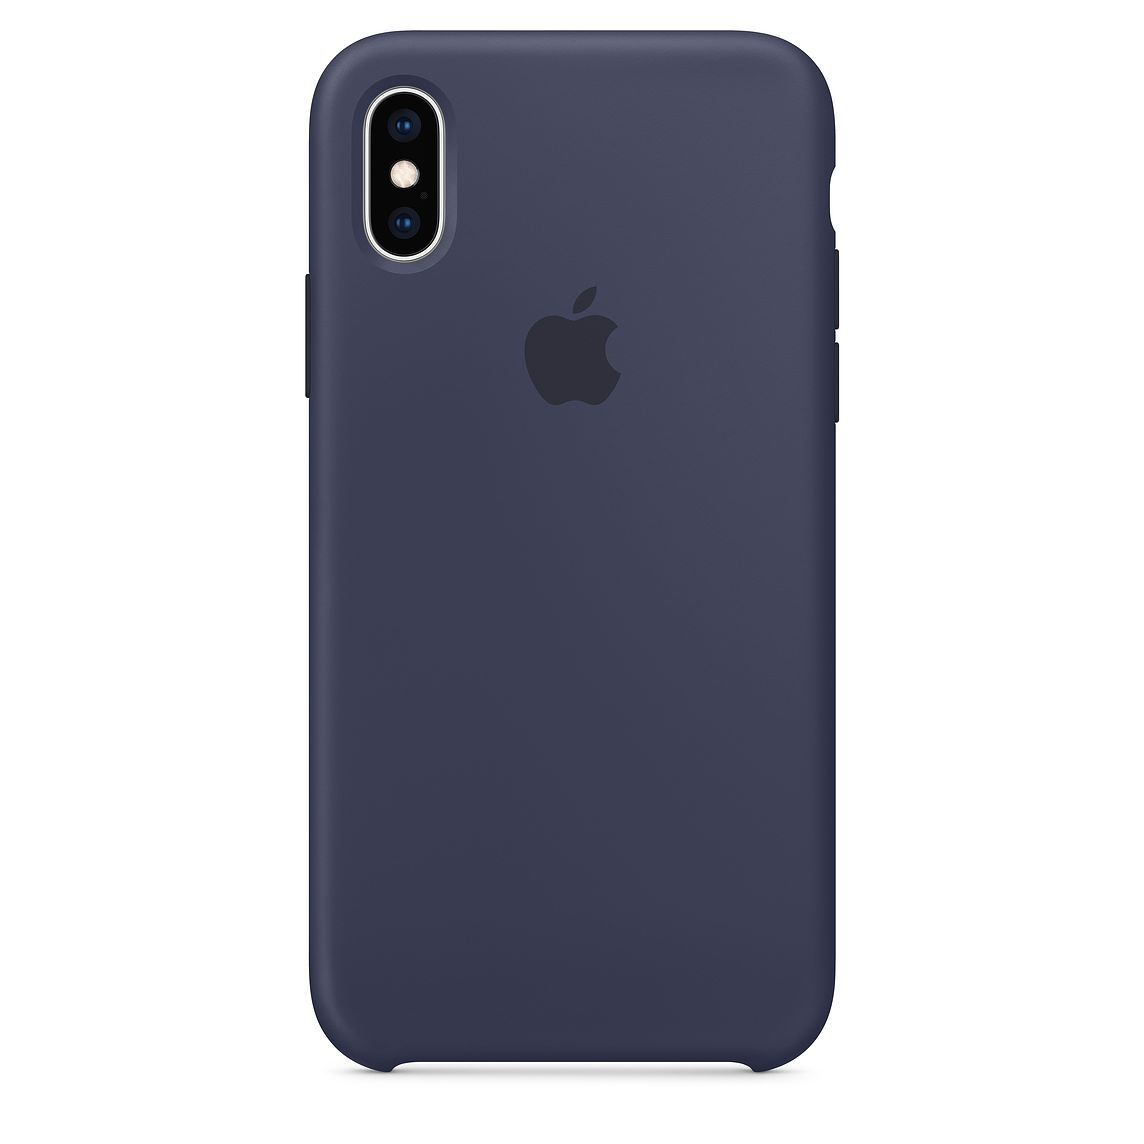 iPhone XS Max Silicone Case Midnight Blue MRWG2FE/A